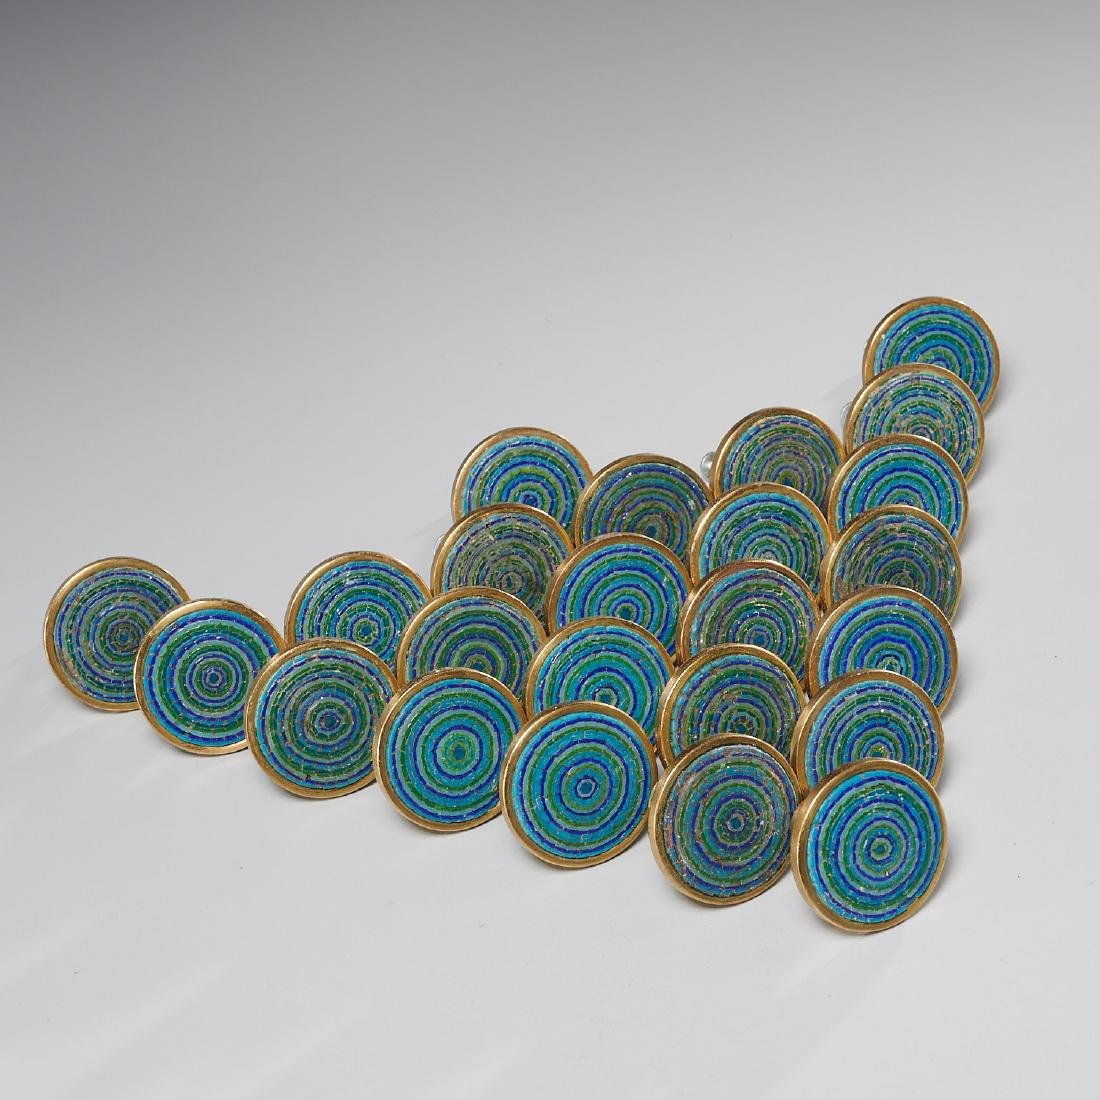 (24) Evelyn Ackerman micro-mosaic and brass pulls